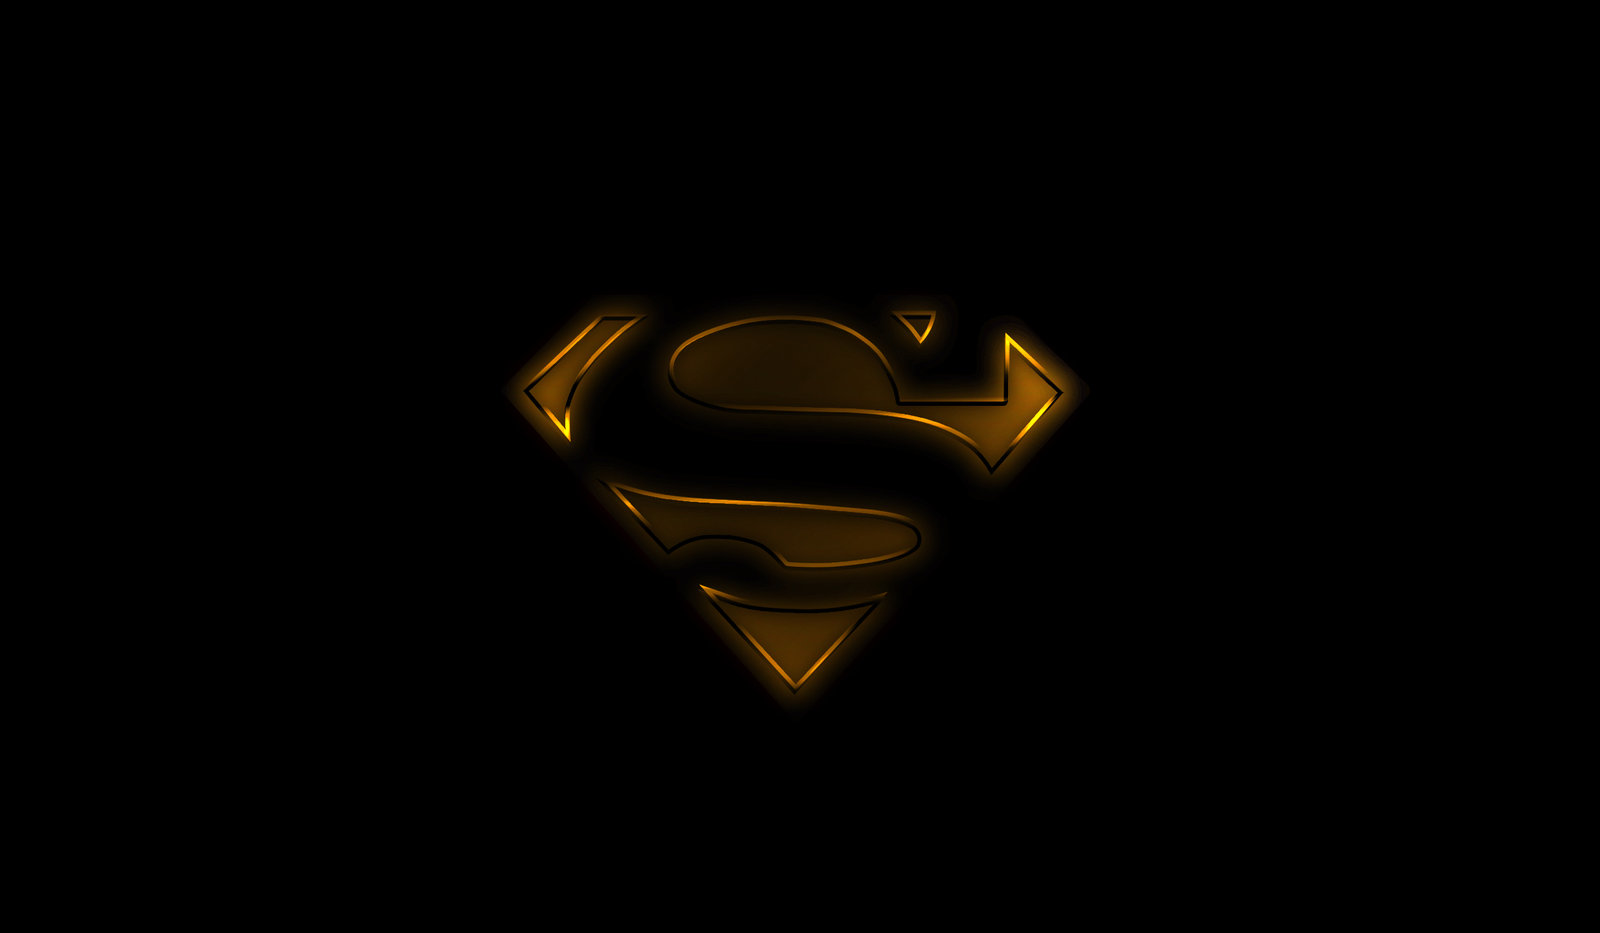 Black superman logo wallpaper wallpapersafari for Deviantart wallpaper